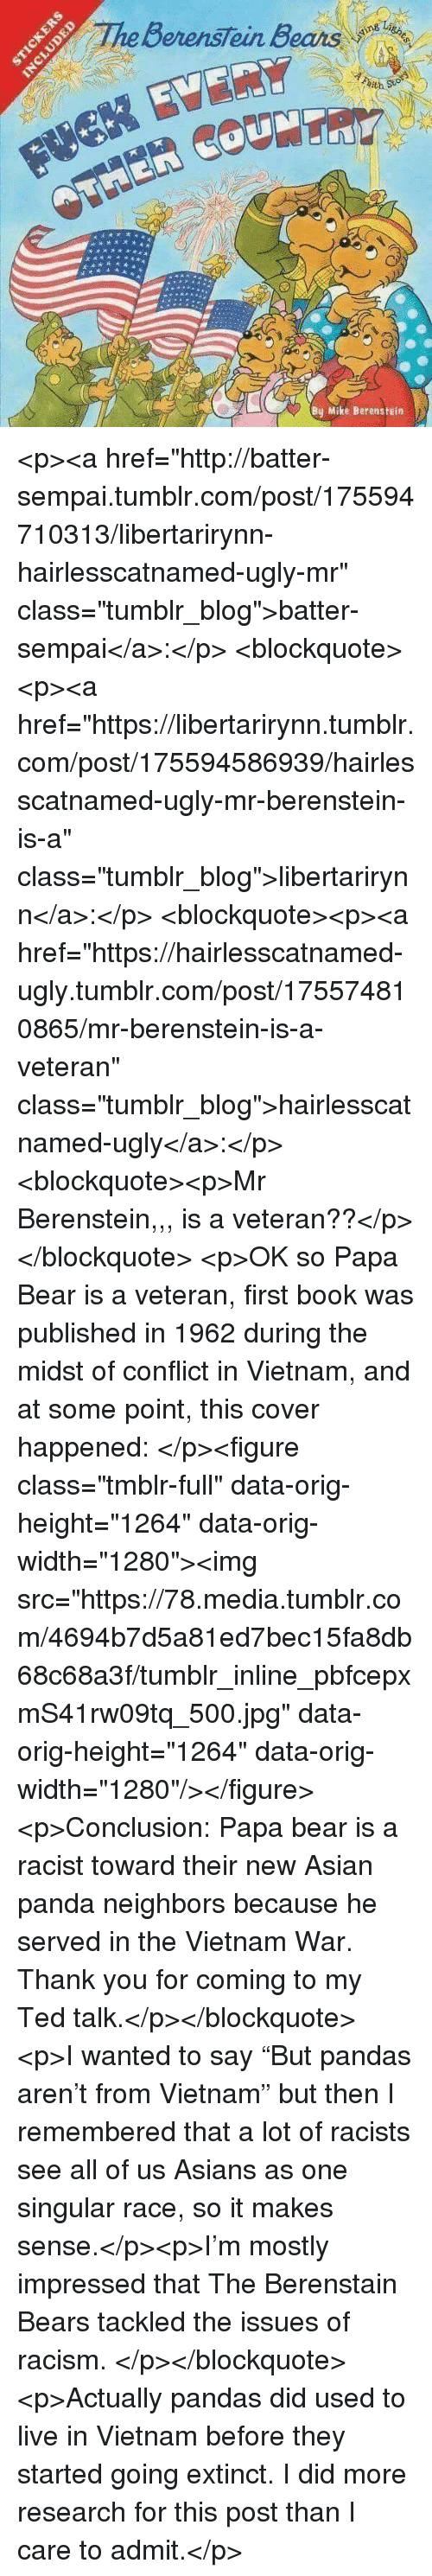 """Asian, Berenstain Bears, and Racism: BerensTein Bears  ith  By Mike Berenstein <p><a href=""""http://batter-sempai.tumblr.com/post/175594710313/libertarirynn-hairlesscatnamed-ugly-mr"""" class=""""tumblr_blog"""">batter-sempai</a>:</p>  <blockquote><p><a href=""""https://libertarirynn.tumblr.com/post/175594586939/hairlesscatnamed-ugly-mr-berenstein-is-a"""" class=""""tumblr_blog"""">libertarirynn</a>:</p>  <blockquote><p><a href=""""https://hairlesscatnamed-ugly.tumblr.com/post/175574810865/mr-berenstein-is-a-veteran"""" class=""""tumblr_blog"""">hairlesscatnamed-ugly</a>:</p>  <blockquote><p>Mr Berenstein,,, is a veteran??</p></blockquote>  <p>OK so Papa Bear is a veteran, first book was published in 1962 during the midst of conflict in Vietnam, and at some point, this cover happened: </p><figure class=""""tmblr-full"""" data-orig-height=""""1264"""" data-orig-width=""""1280""""><img src=""""https://78.media.tumblr.com/4694b7d5a81ed7bec15fa8db68c68a3f/tumblr_inline_pbfcepxmS41rw09tq_500.jpg"""" data-orig-height=""""1264"""" data-orig-width=""""1280""""/></figure><p>Conclusion: Papa bear is a racist toward their new Asian panda neighbors because he served in the Vietnam War. Thank you for coming to my Ted talk.</p></blockquote>  <p>I wanted to say """"But pandas aren't from Vietnam"""" but then I remembered that a lot of racists see all of us Asians as one singular race, so it makes sense.</p><p>I'm mostly impressed that The Berenstain Bears tackled the issues of racism. </p></blockquote>  <p>Actually pandas did used to live in Vietnam before they started going extinct. I did more research for this post than I care to admit.</p>"""